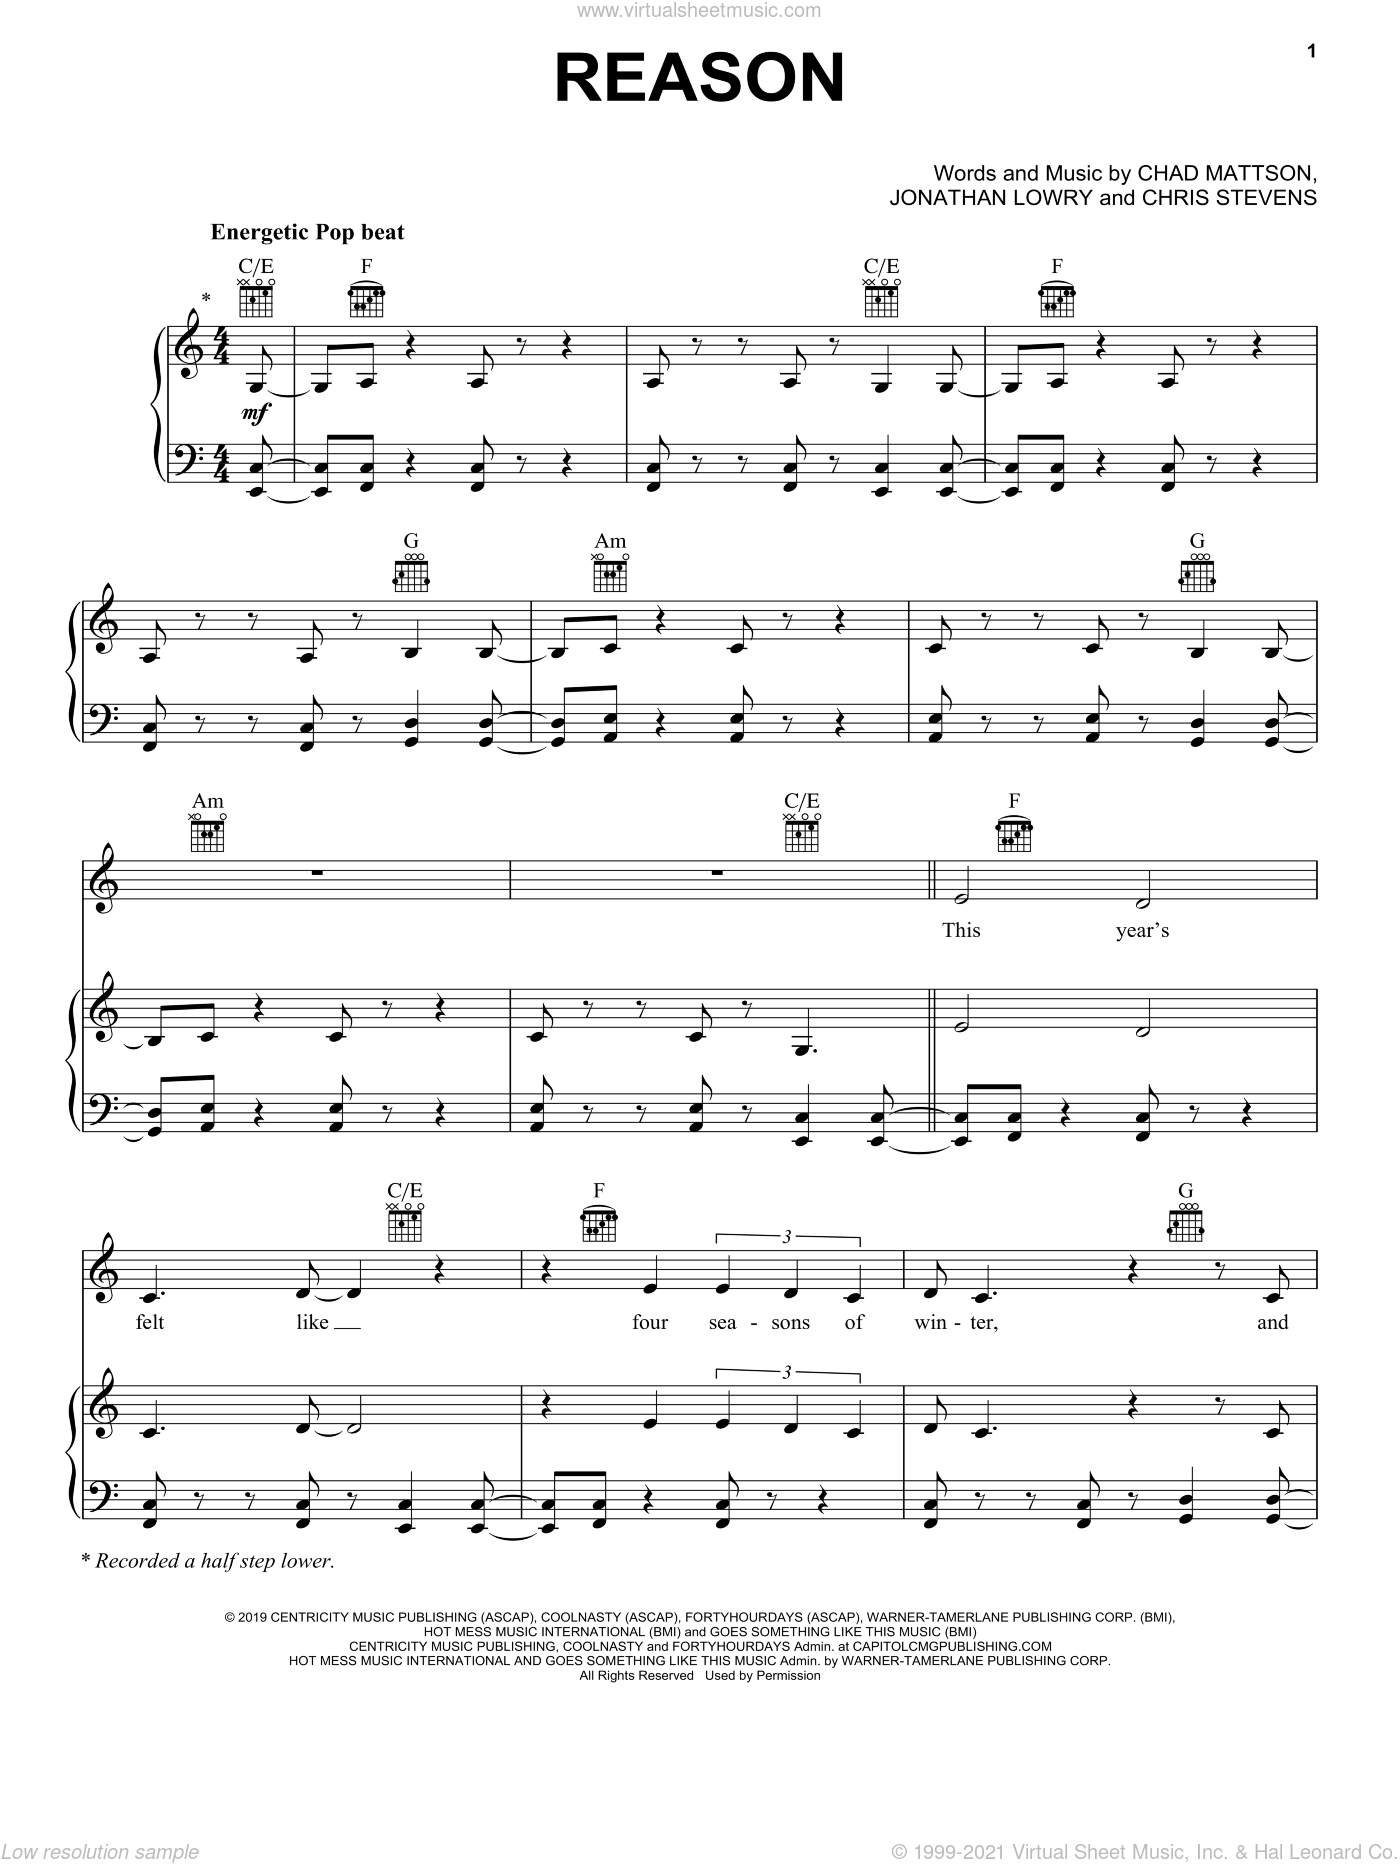 Reason sheet music for voice, piano or guitar by Unspoken, Chad Mattson, Chris Stevens and Jonathan Lowry, intermediate skill level